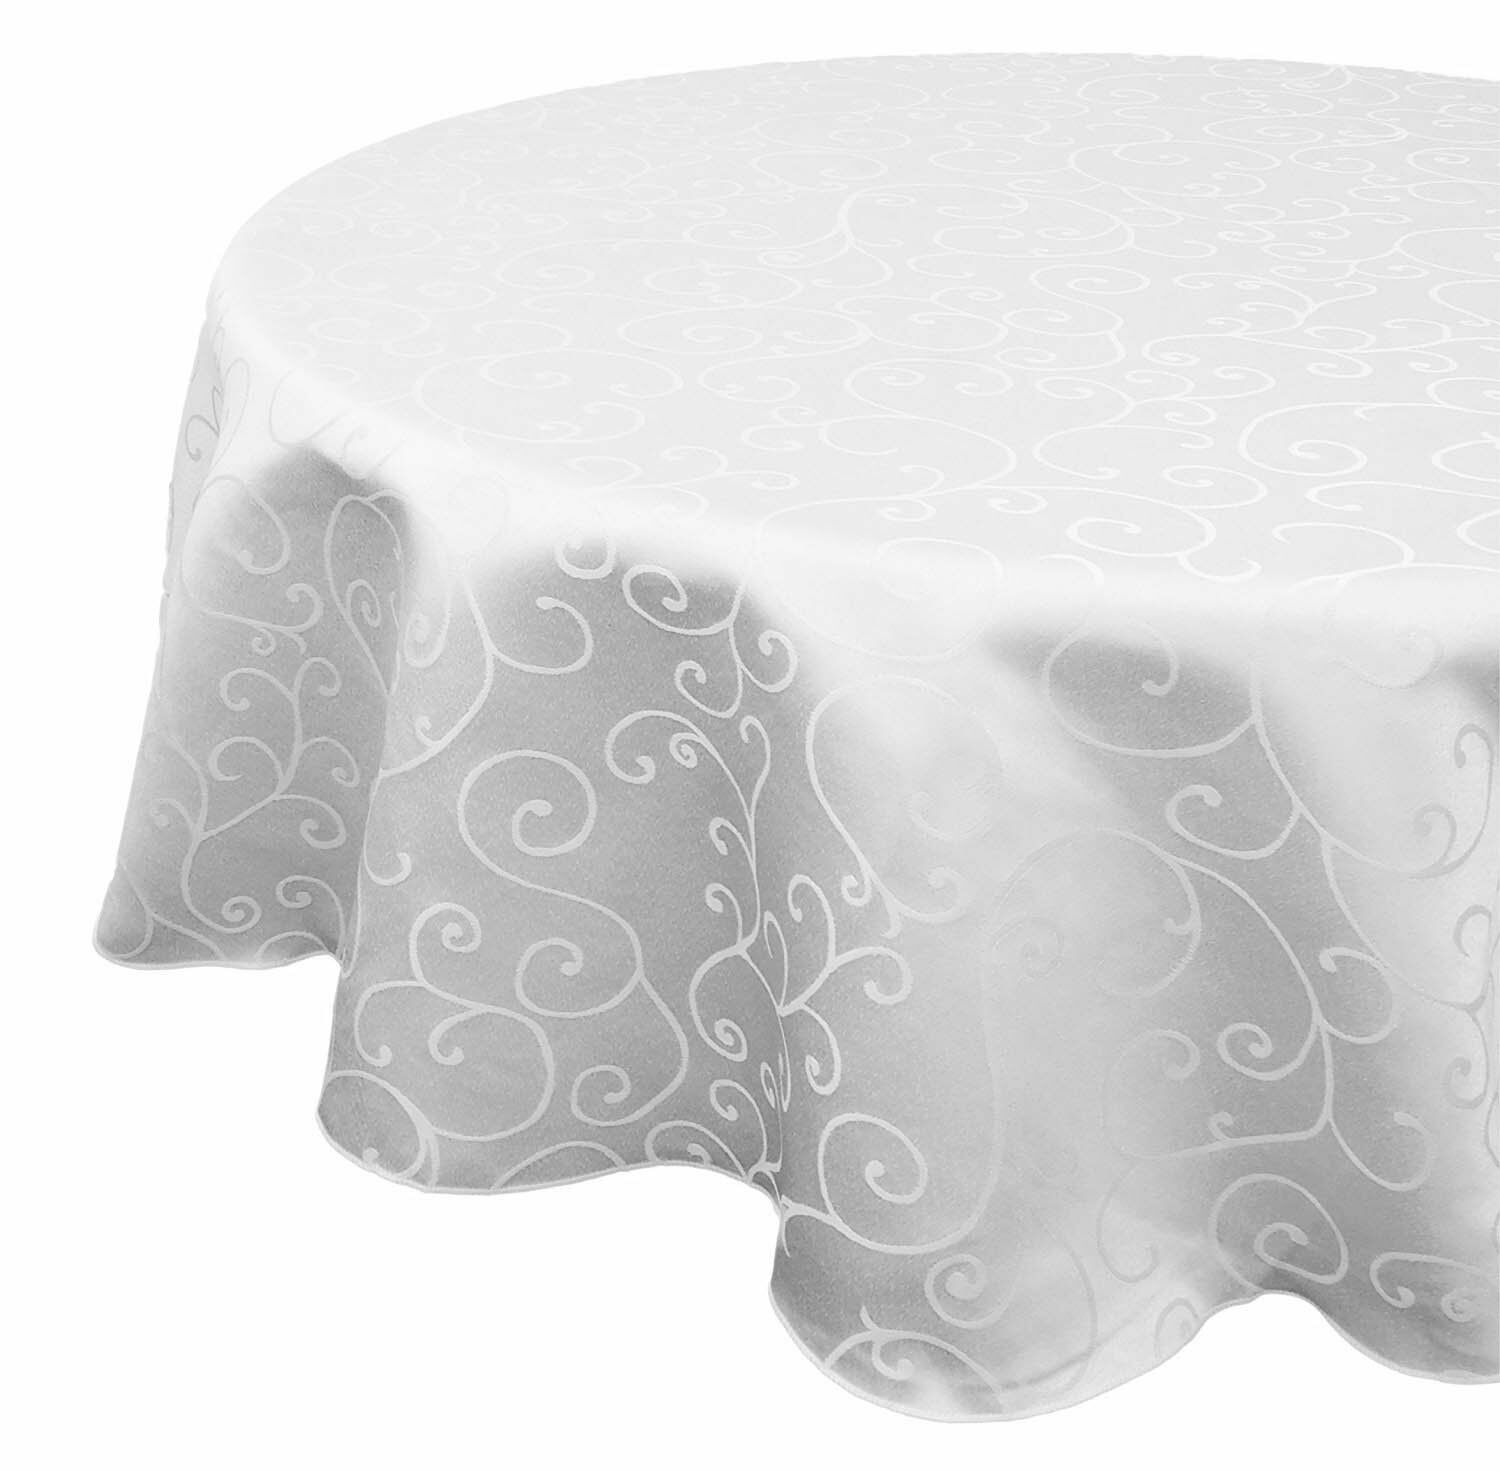 Tablecloth White Round Damask Polyester Cover Dining Table Cloth Swirl 70 inch